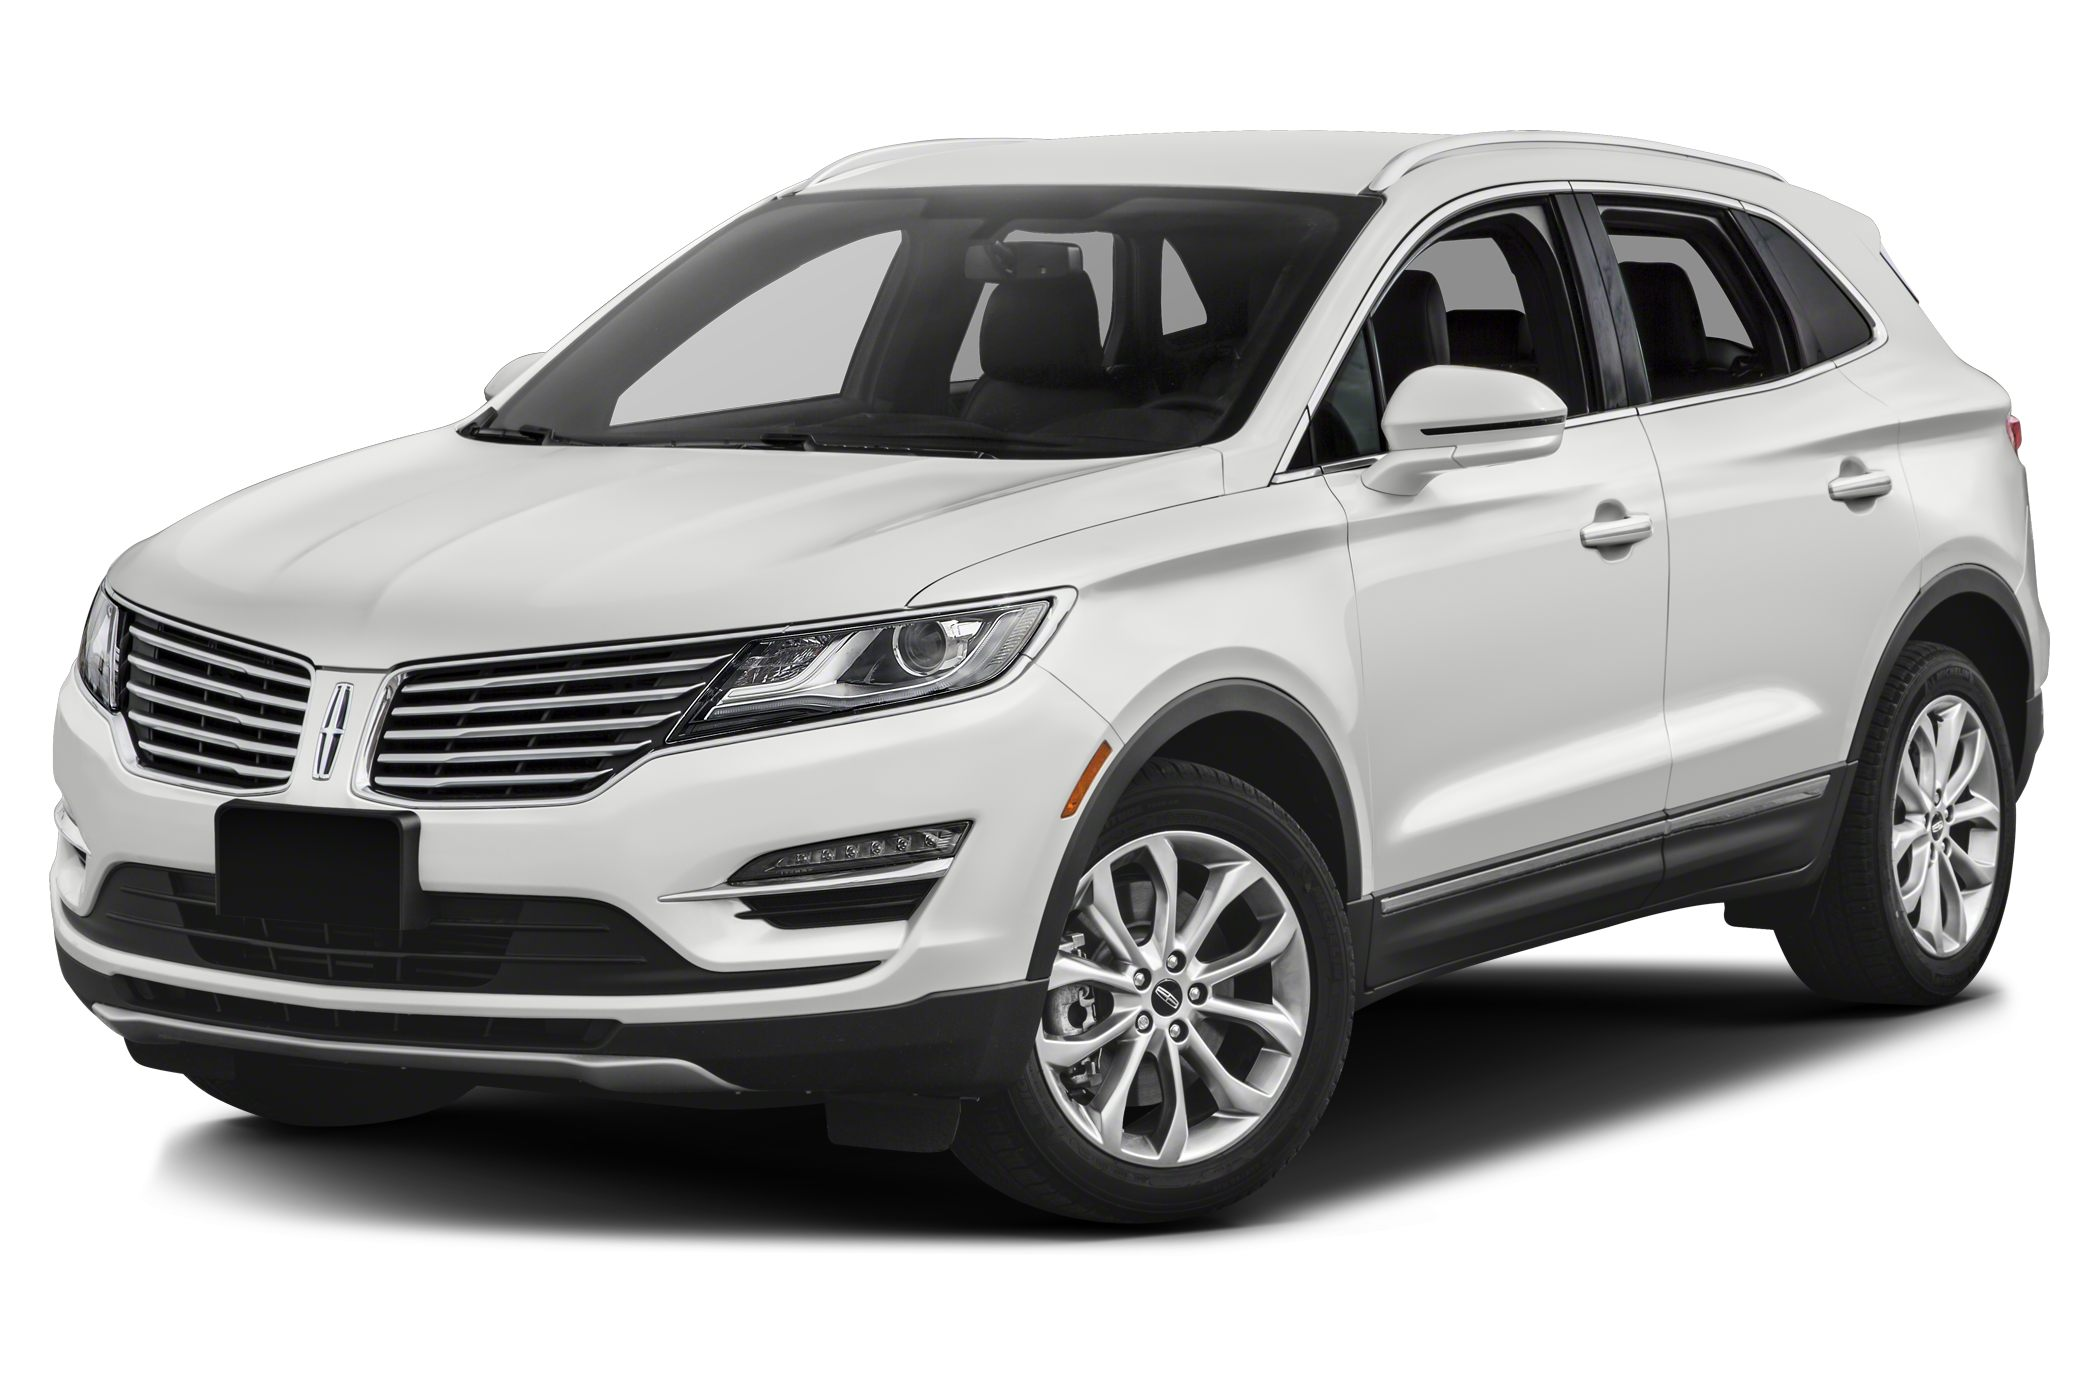 White 2017 Lincoln MKC on display.